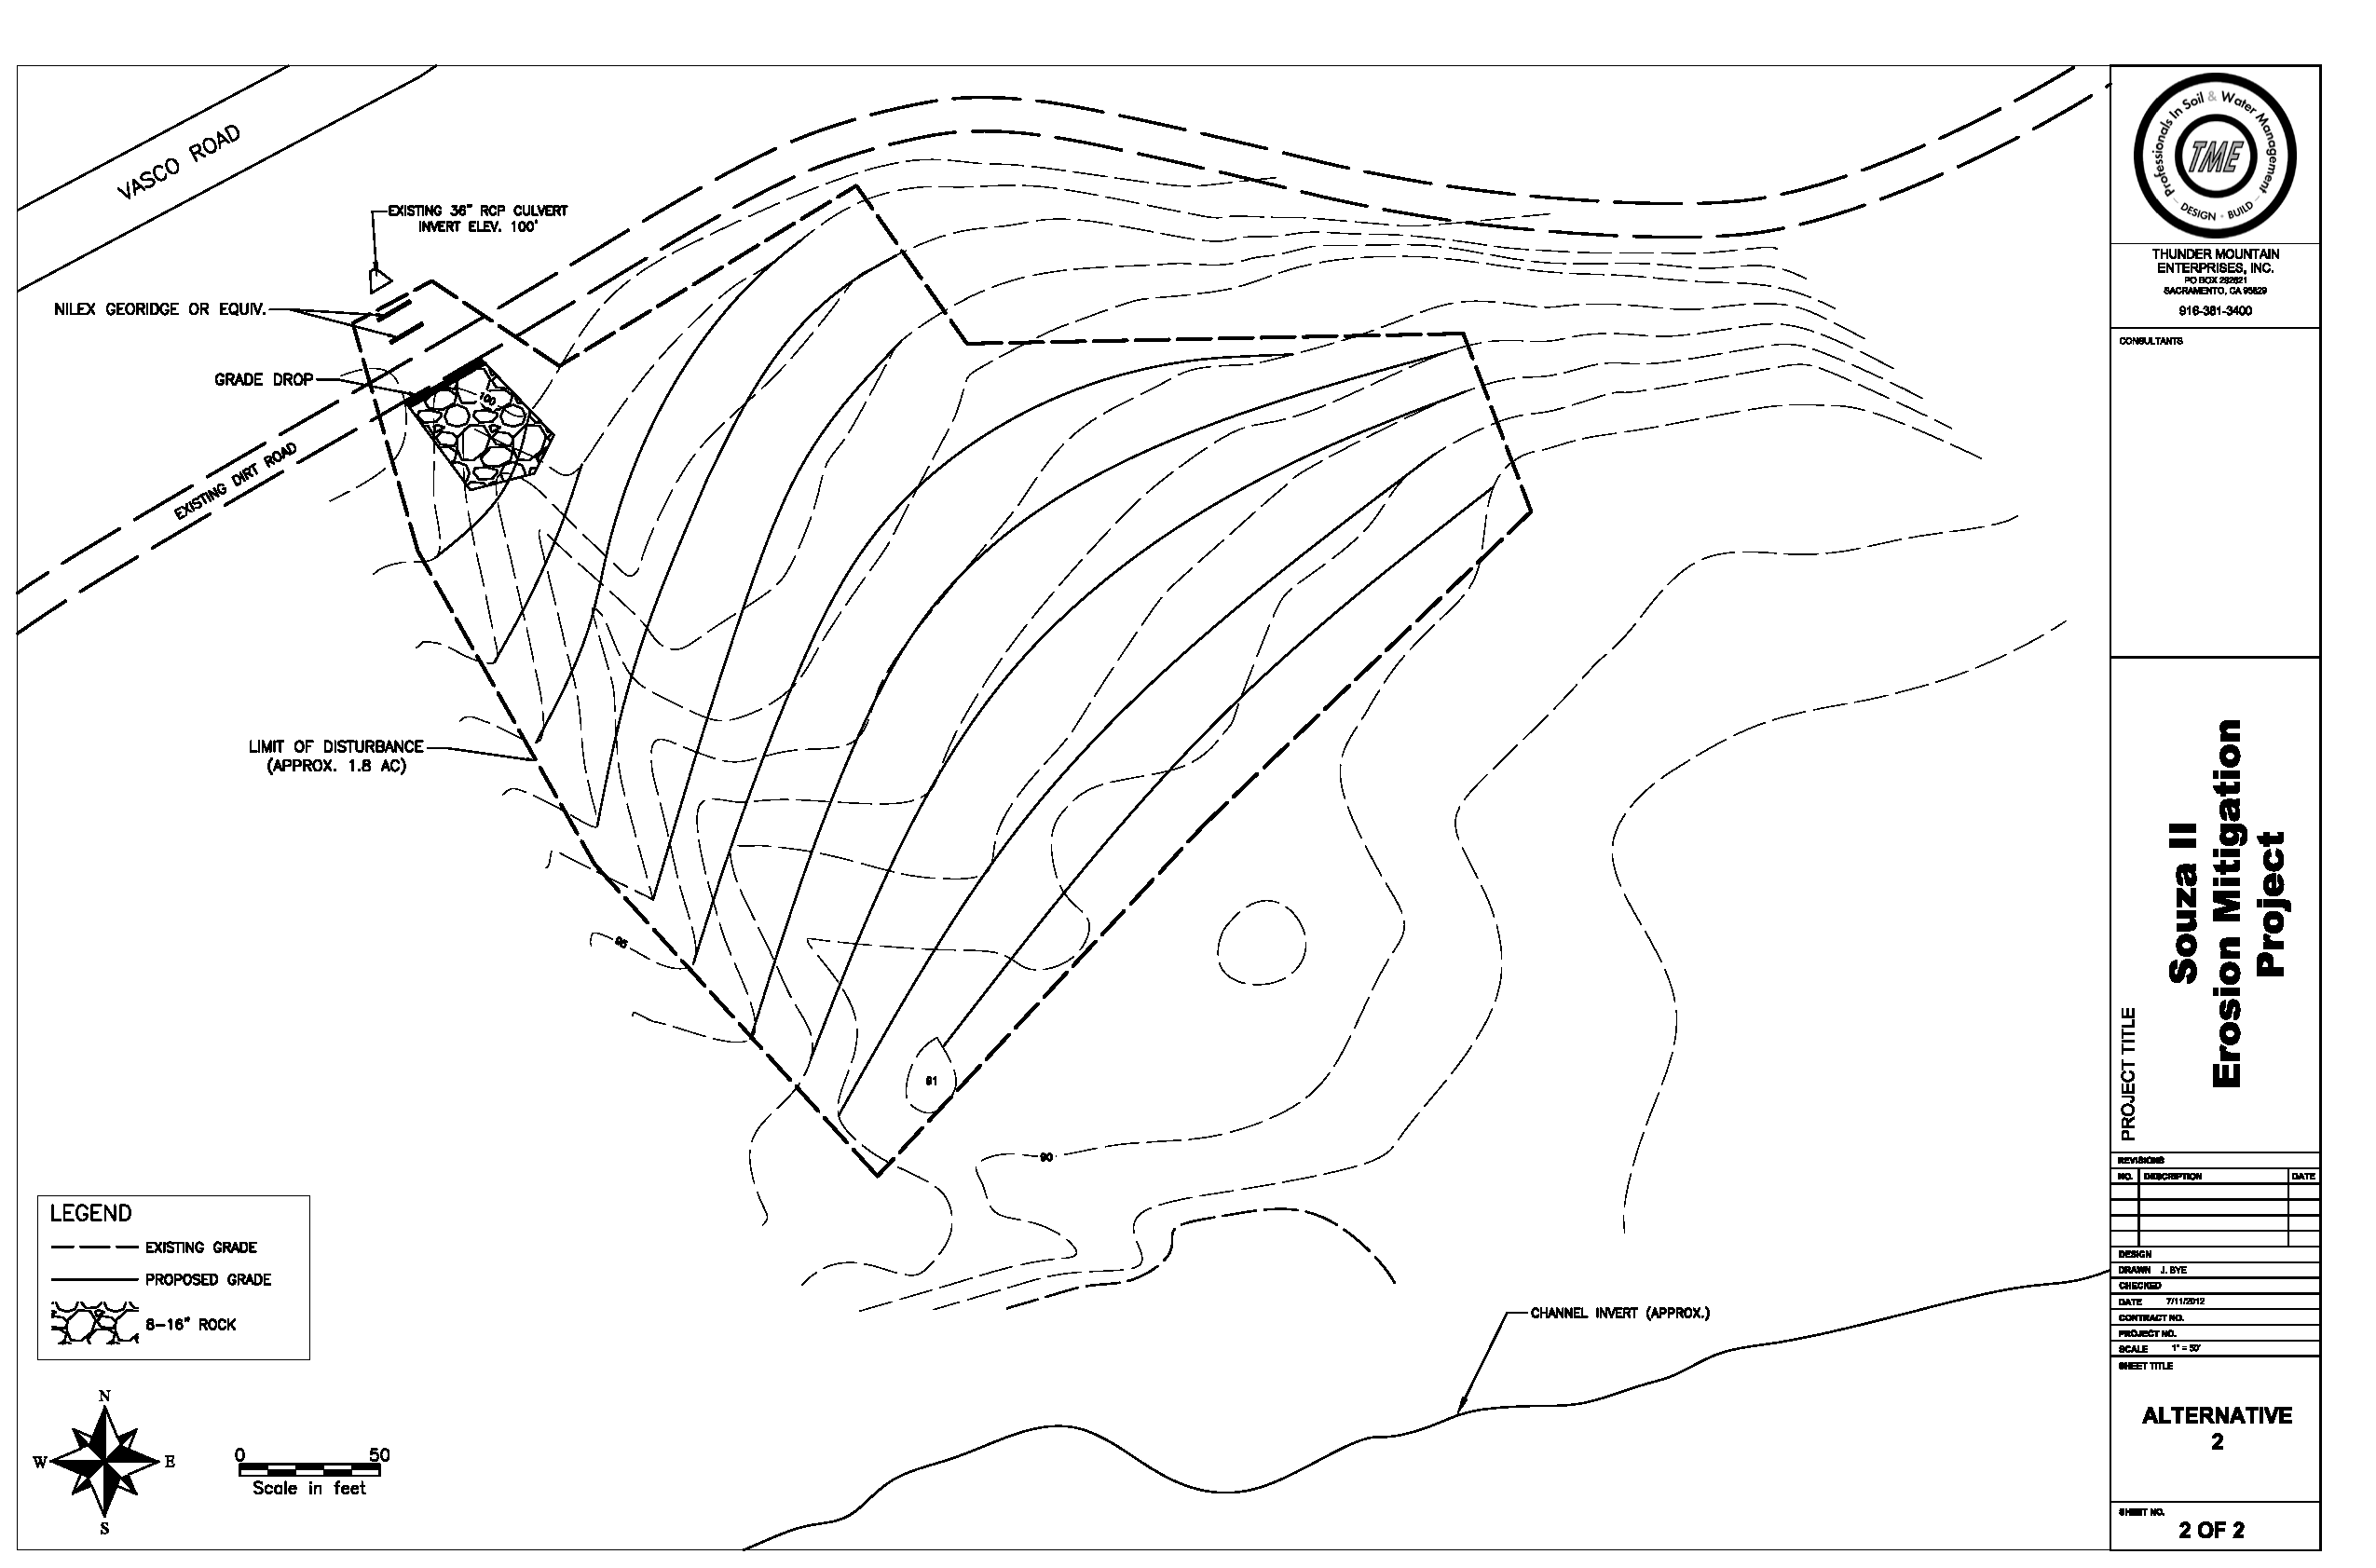 2550x1683 Souza Ii Erosion Mitigation Project Cad Drawing Jesse's Home